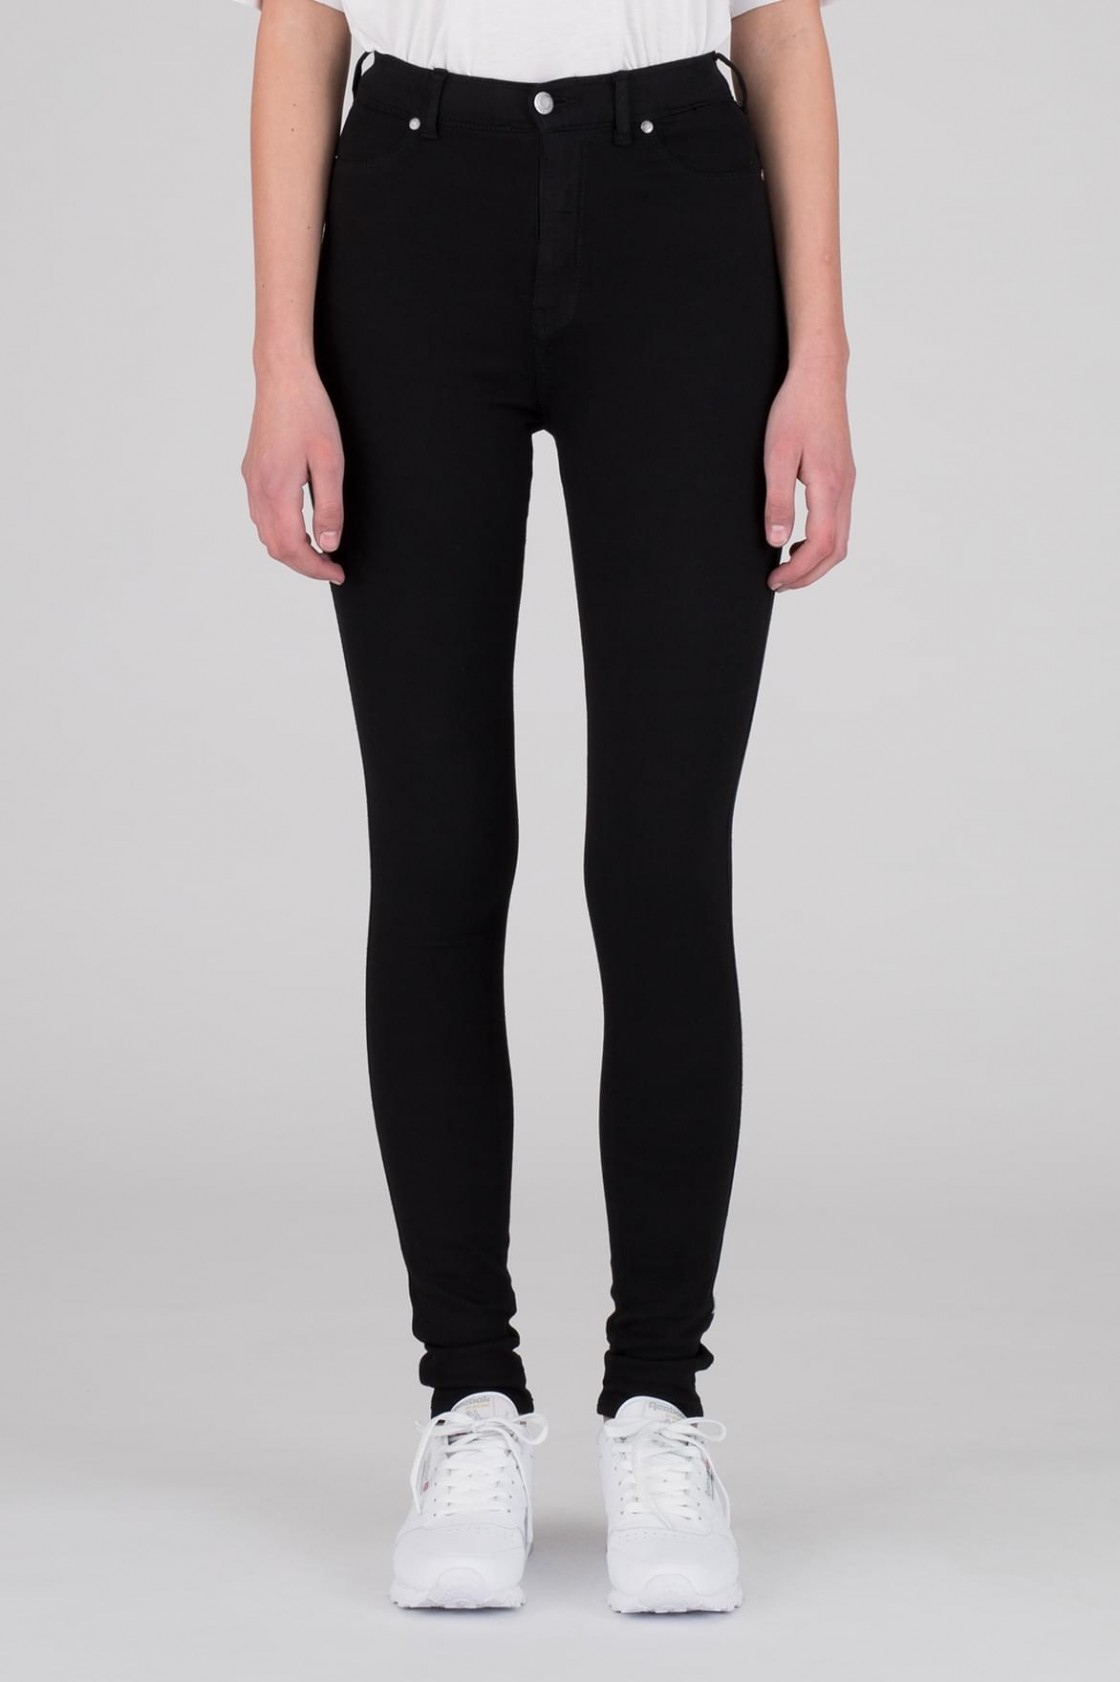 Dr. Denim Solitaire High-Waisted jeans